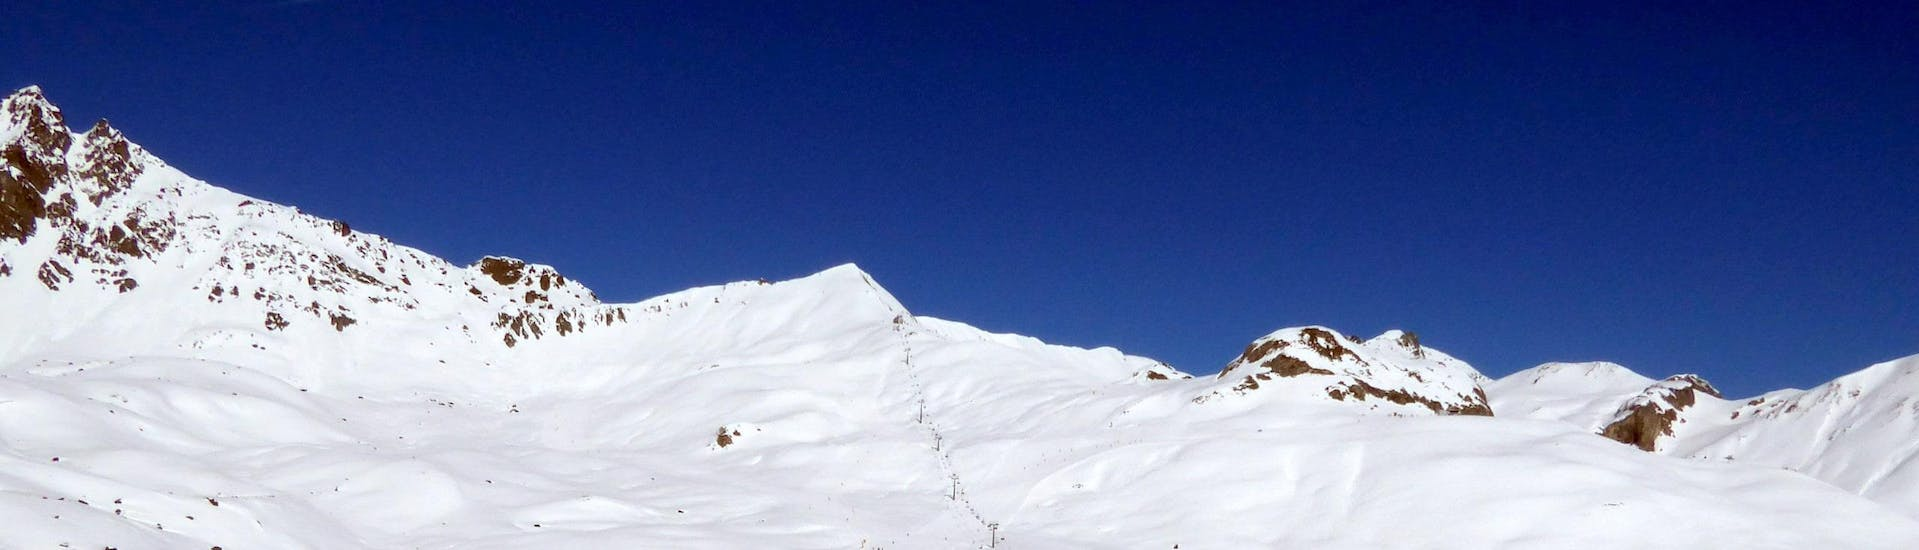 View over the sunny mountain landscape while learning to ski with the ski schools in Samnaun.